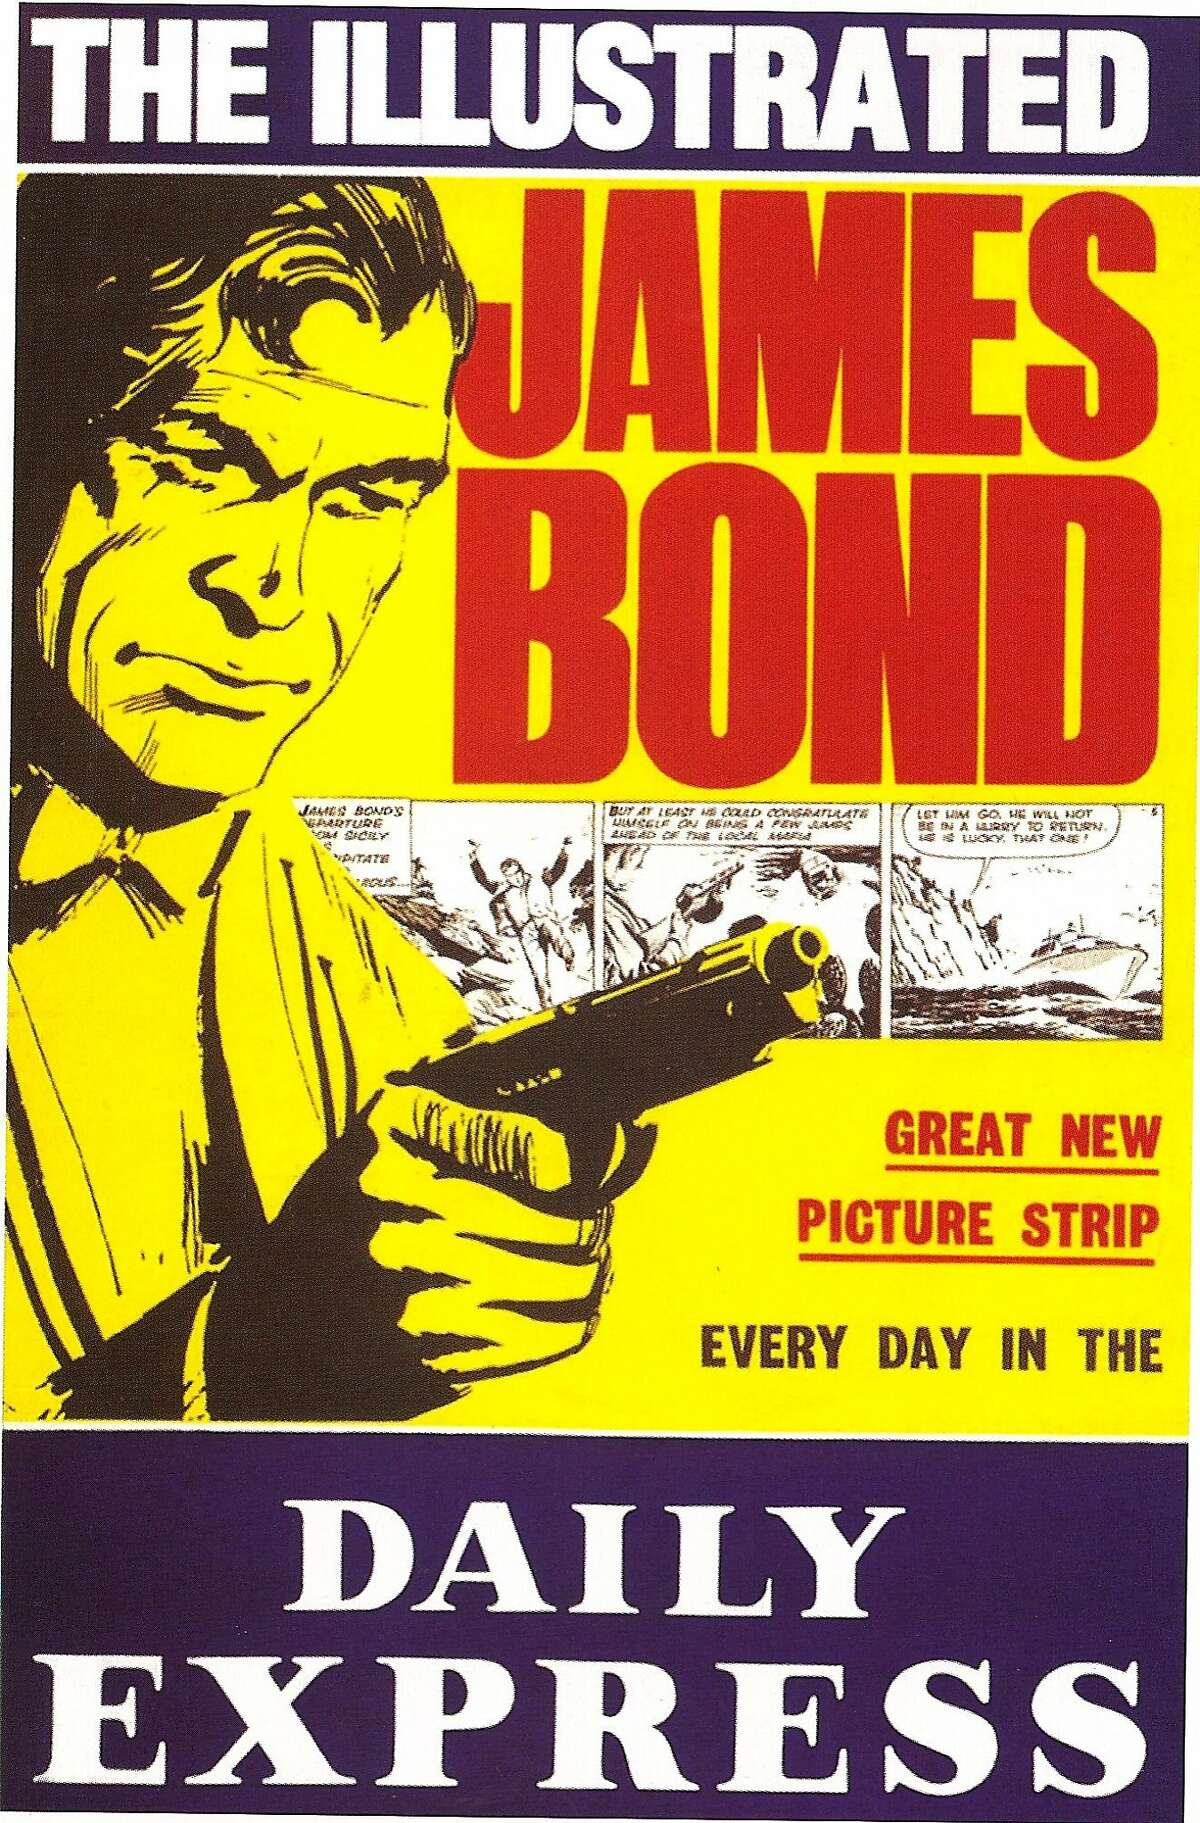 Poster promoting the Bond newspaper strips in the Daily Express - art by John McClusky